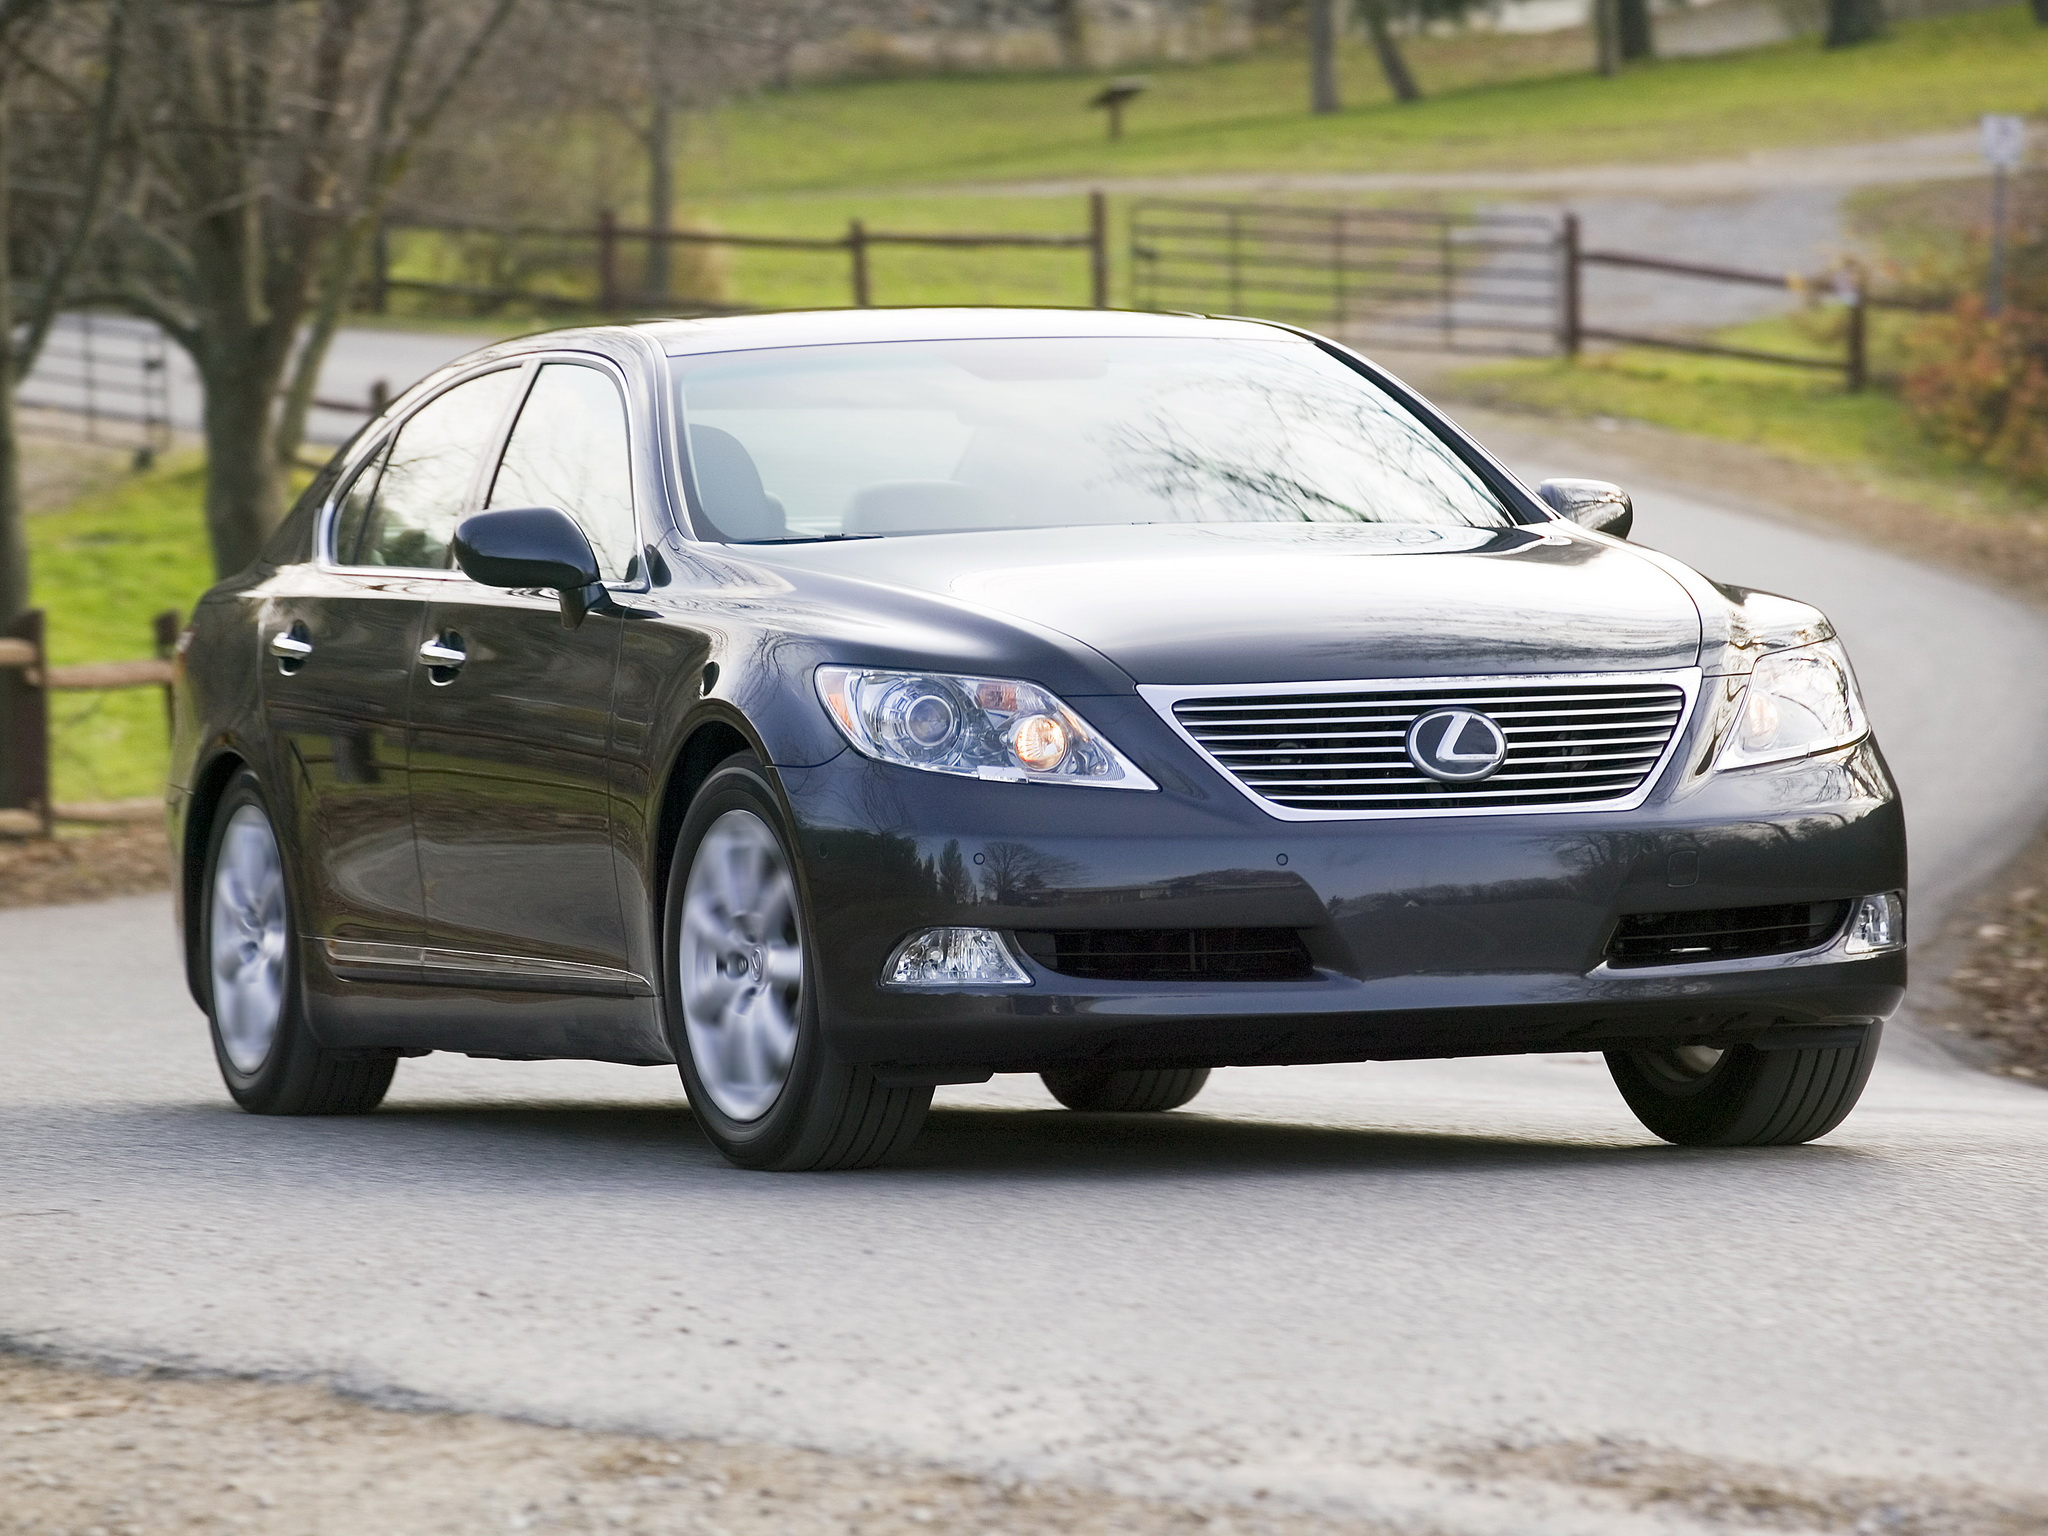 lexus ls 460 2006 technical specifications interior and exterior photo. Black Bedroom Furniture Sets. Home Design Ideas